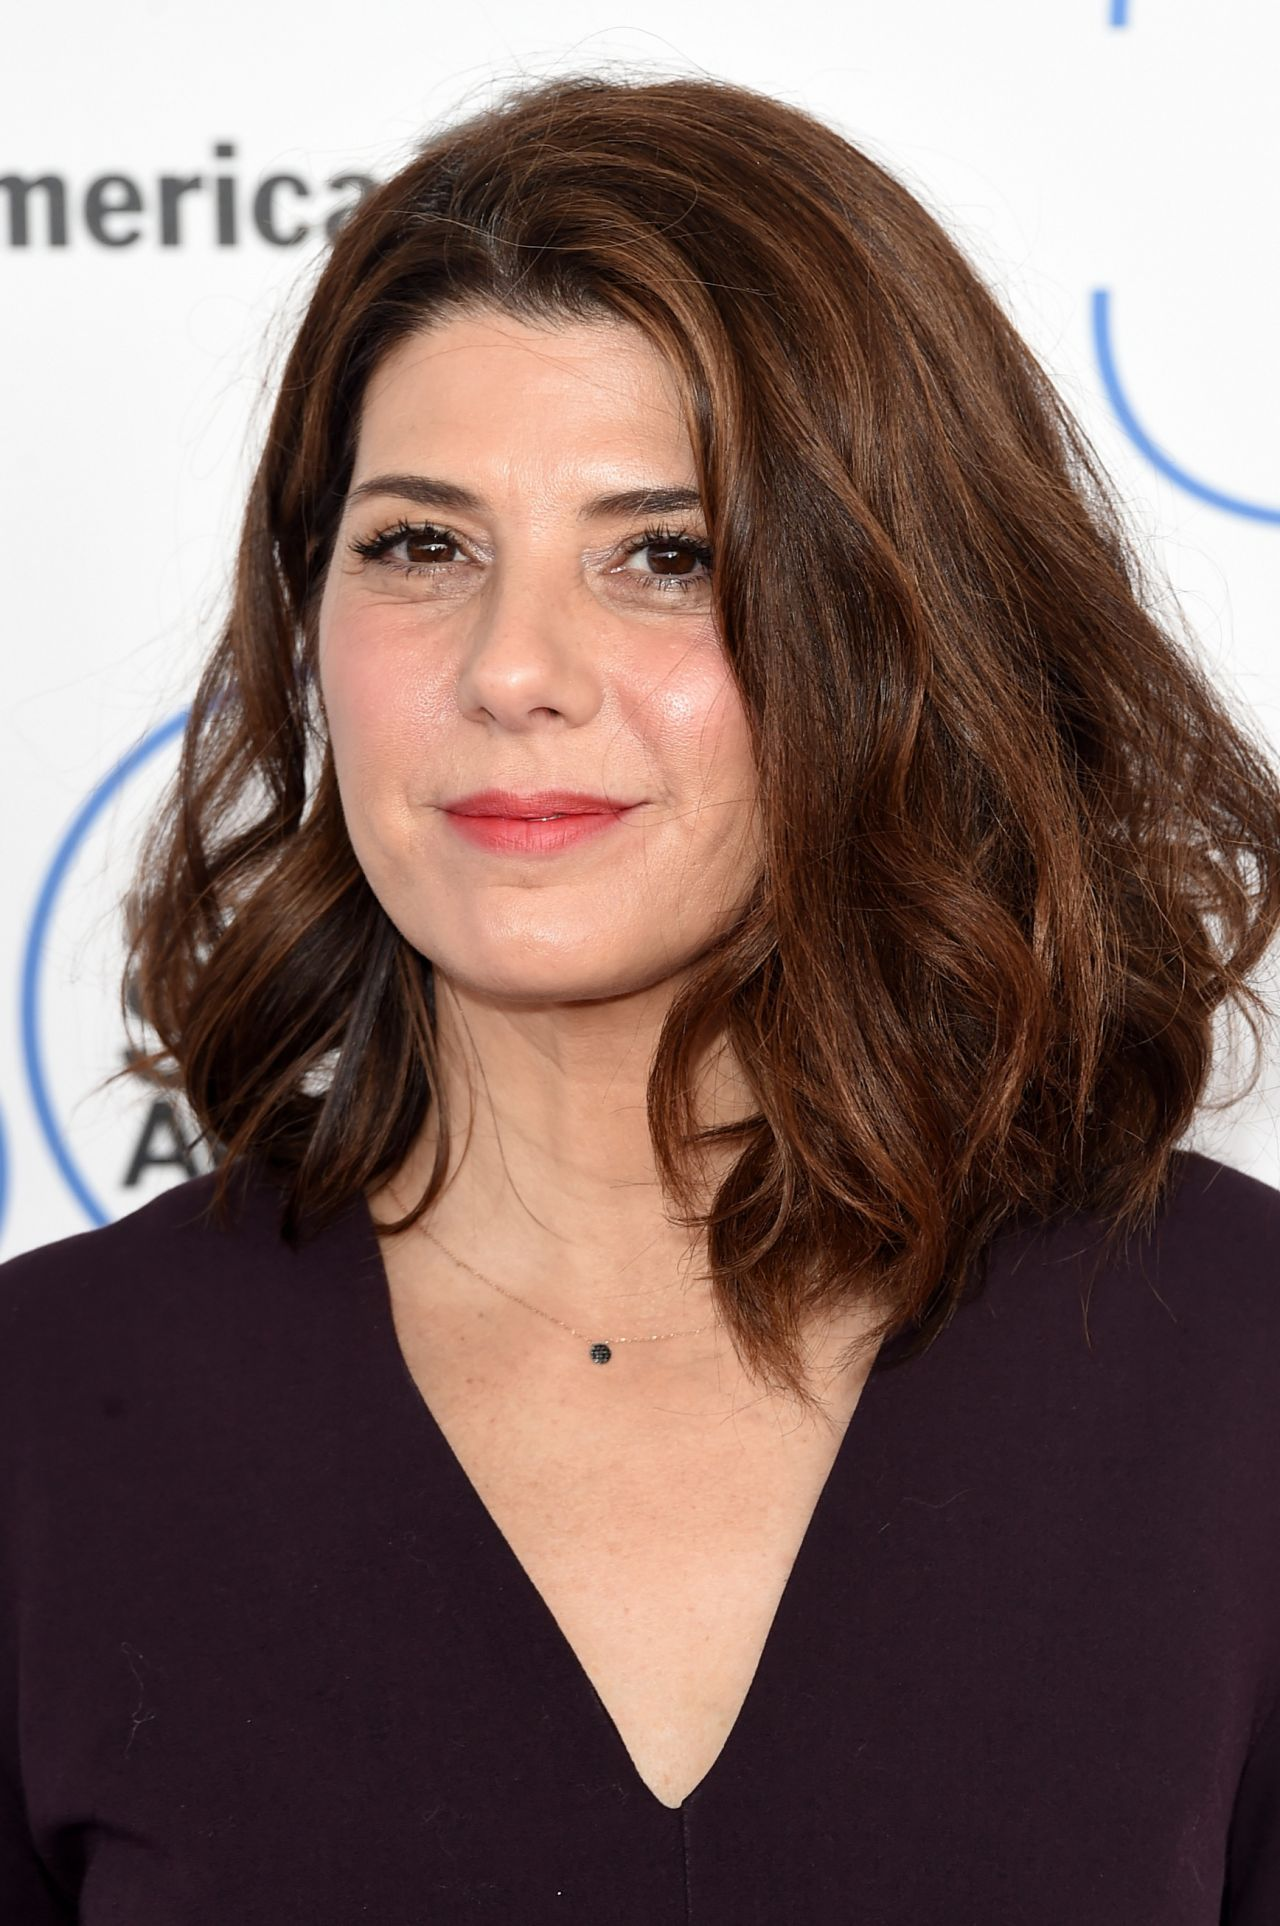 http://celebmafia.com/wp-content/uploads/2015/02/marisa-tomei-2015-film-independent-spirit-awards-in-santa-monica_1.jpg